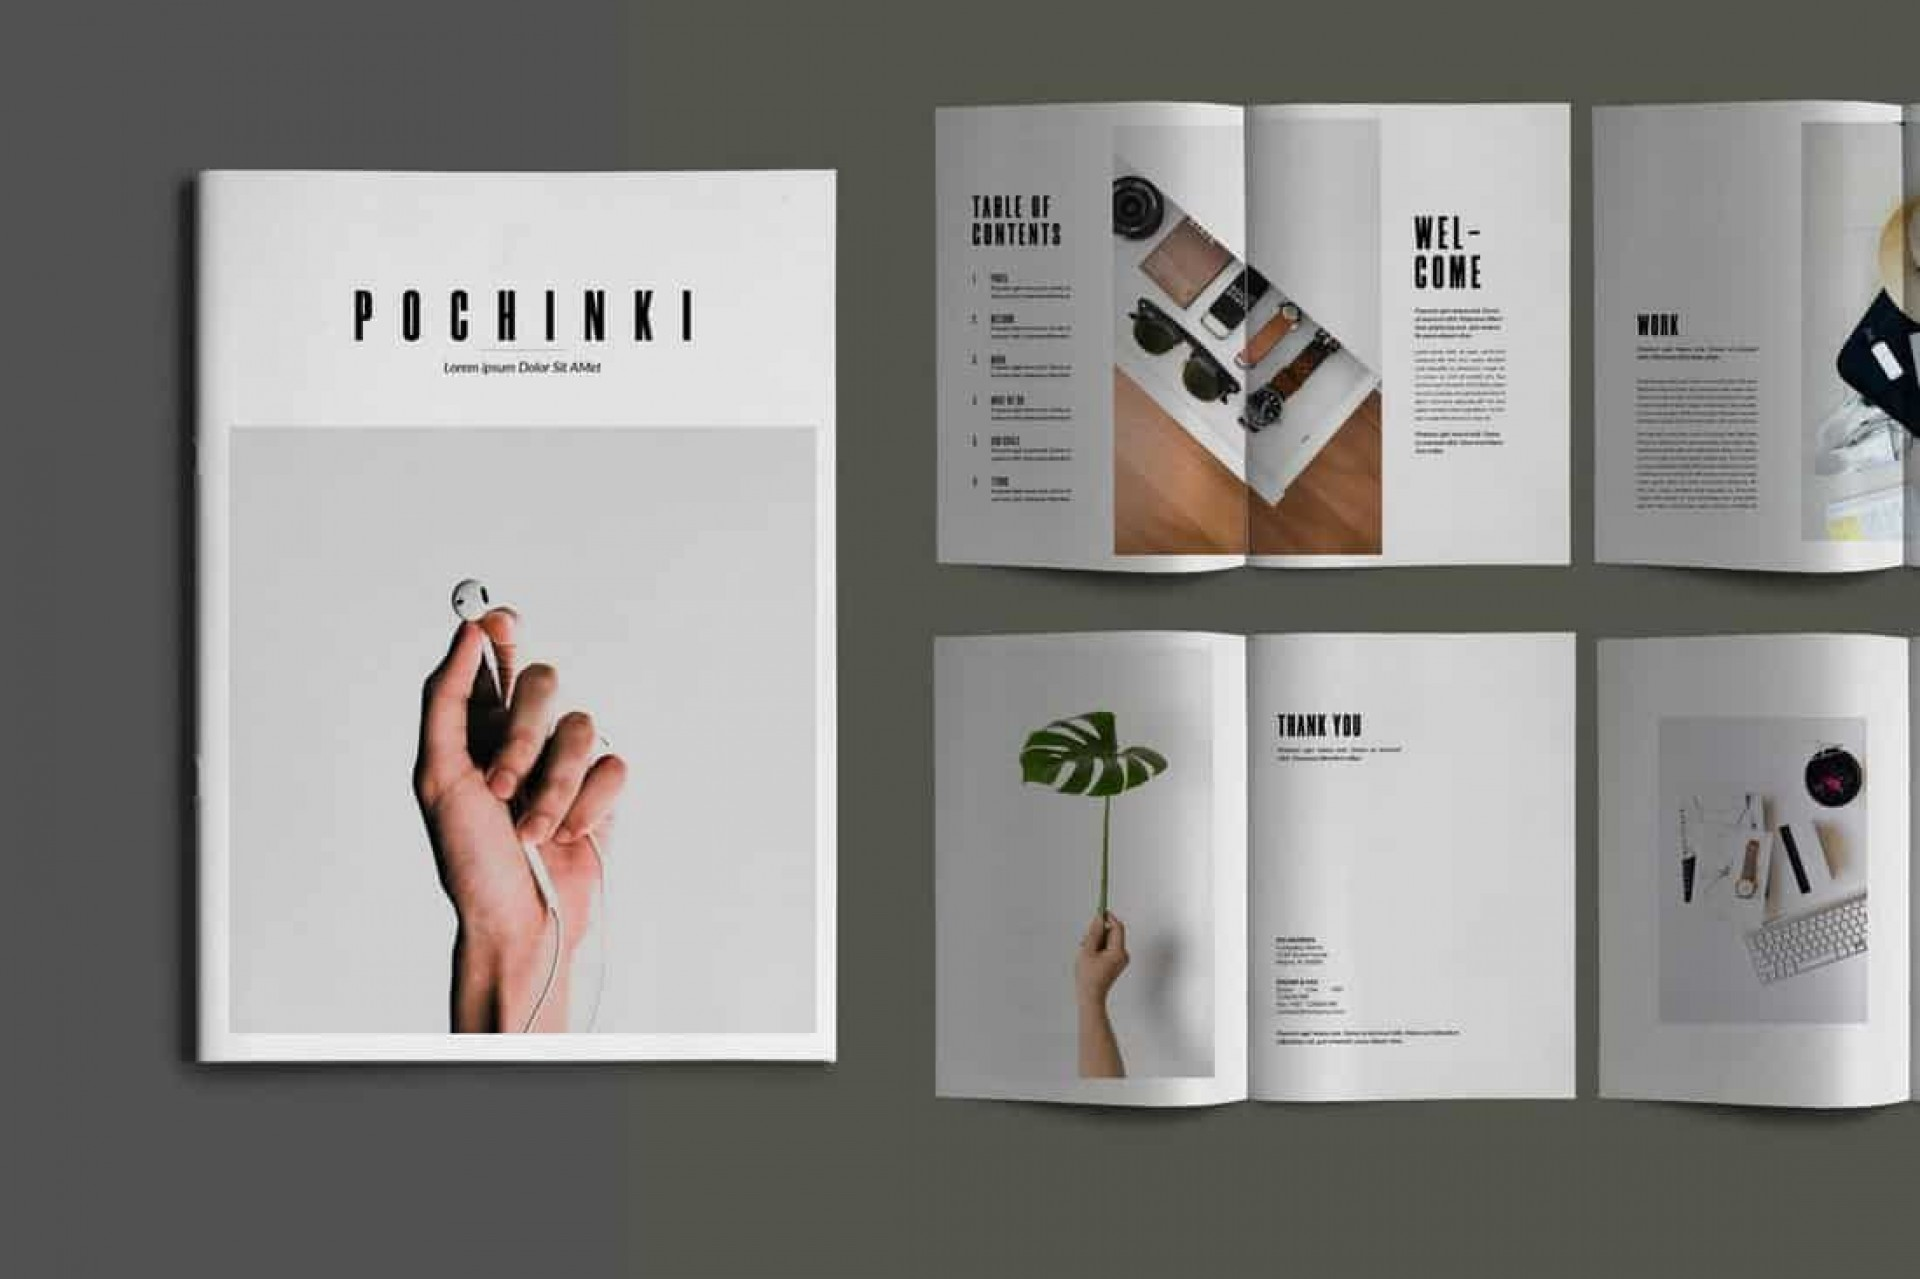 008 Fantastic Indesign A4 Brochure Template Free Download Photo 1920